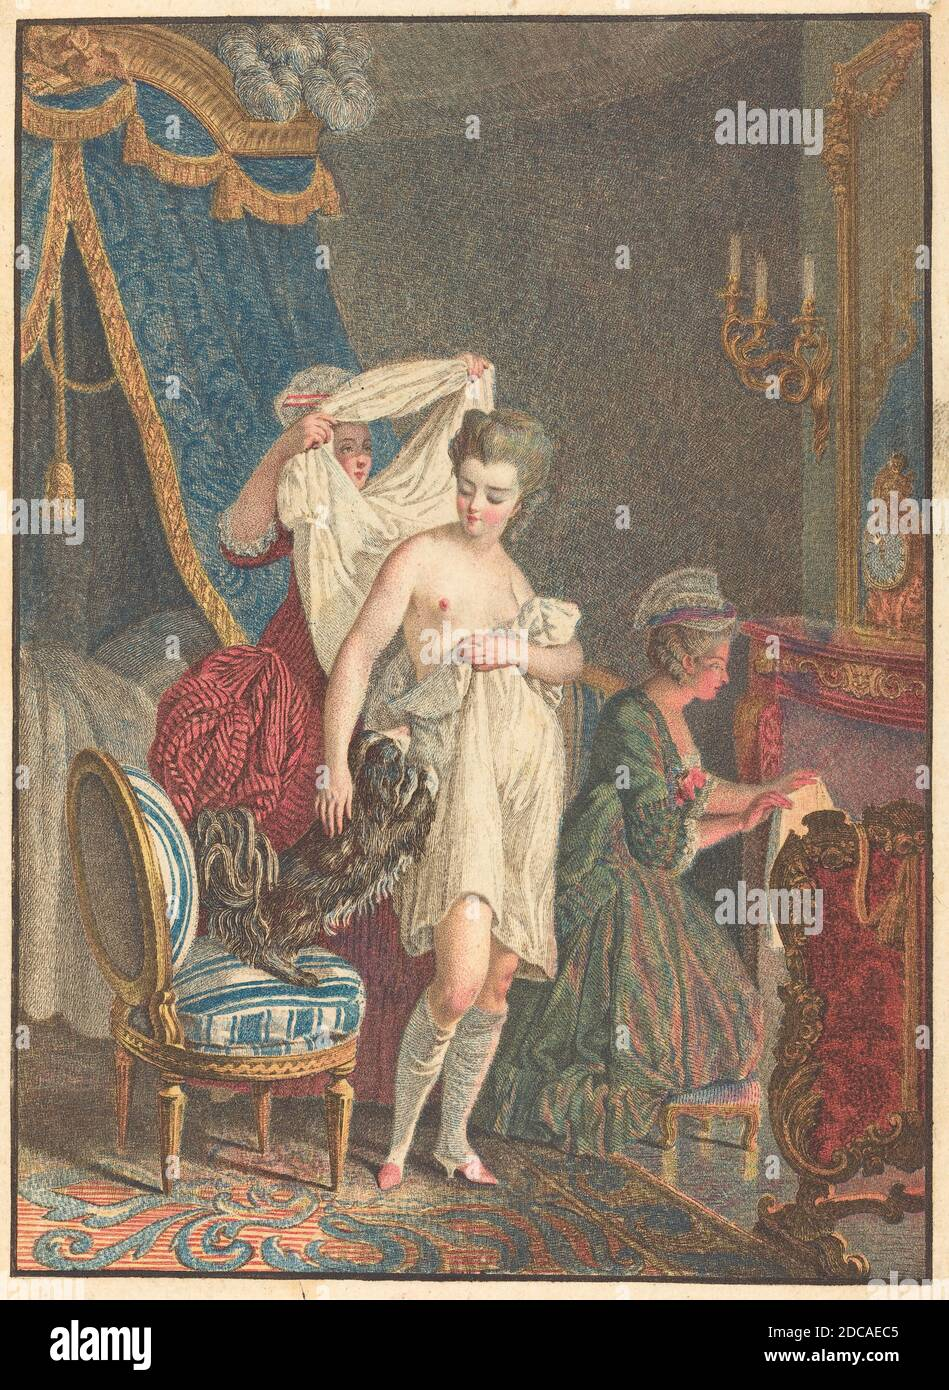 Nicolas François Regnault, (artist), French, 1746 - 1810, Le Lever, color stipple etching and etching Stock Photo